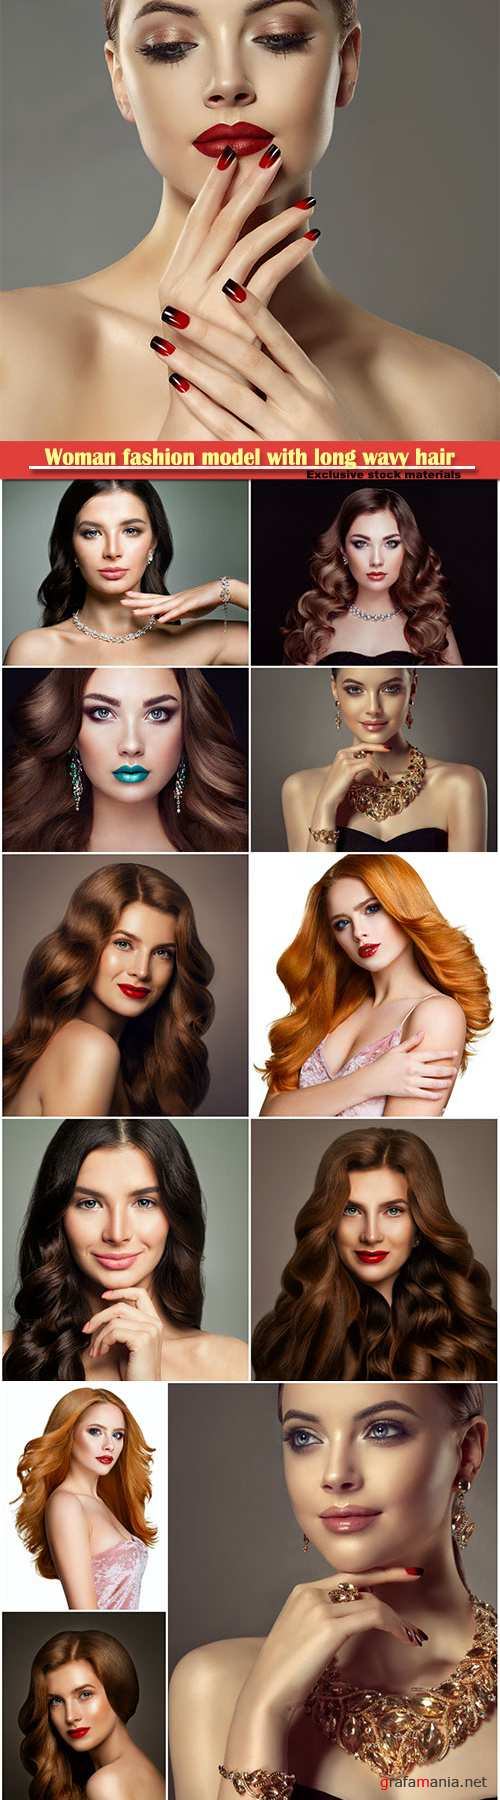 Woman fashion model with long wavy hair, haircare concept